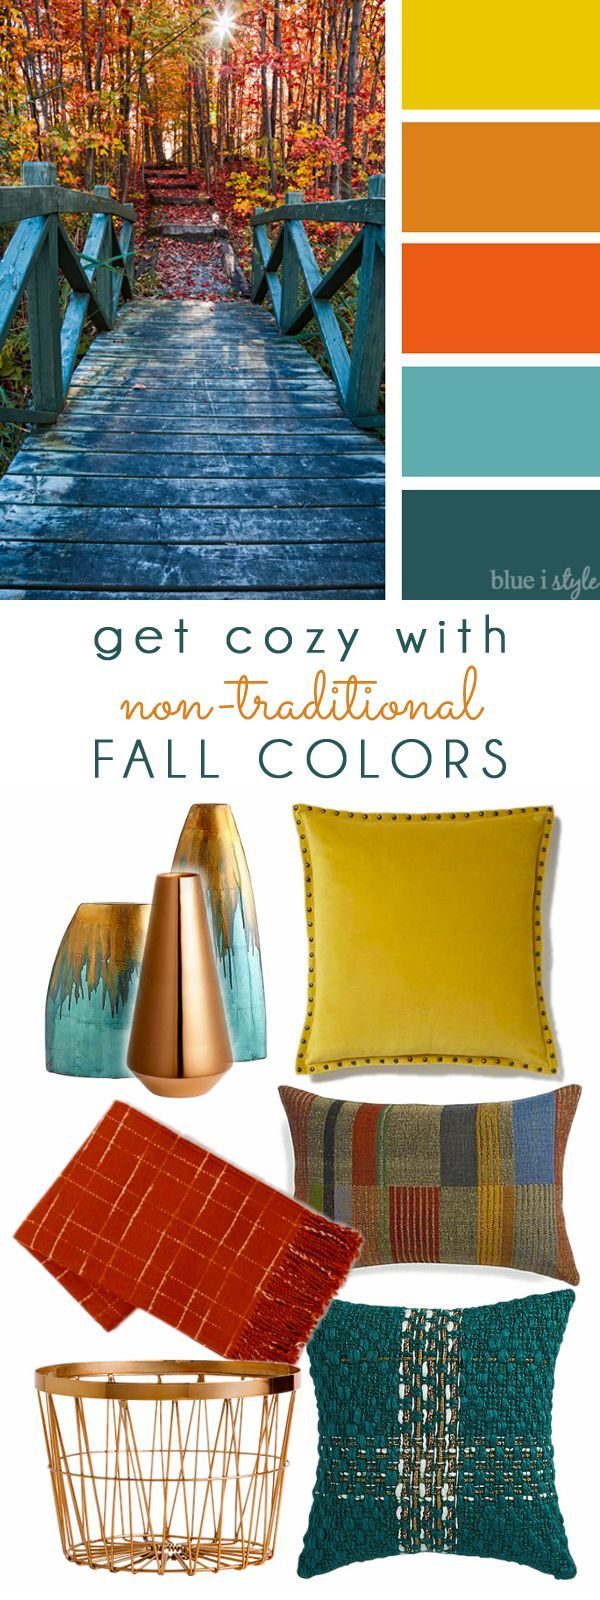 decorating with style get cozy with non traditional fall colors part 2 fall color palette homefall - Home Decor Color Palettes